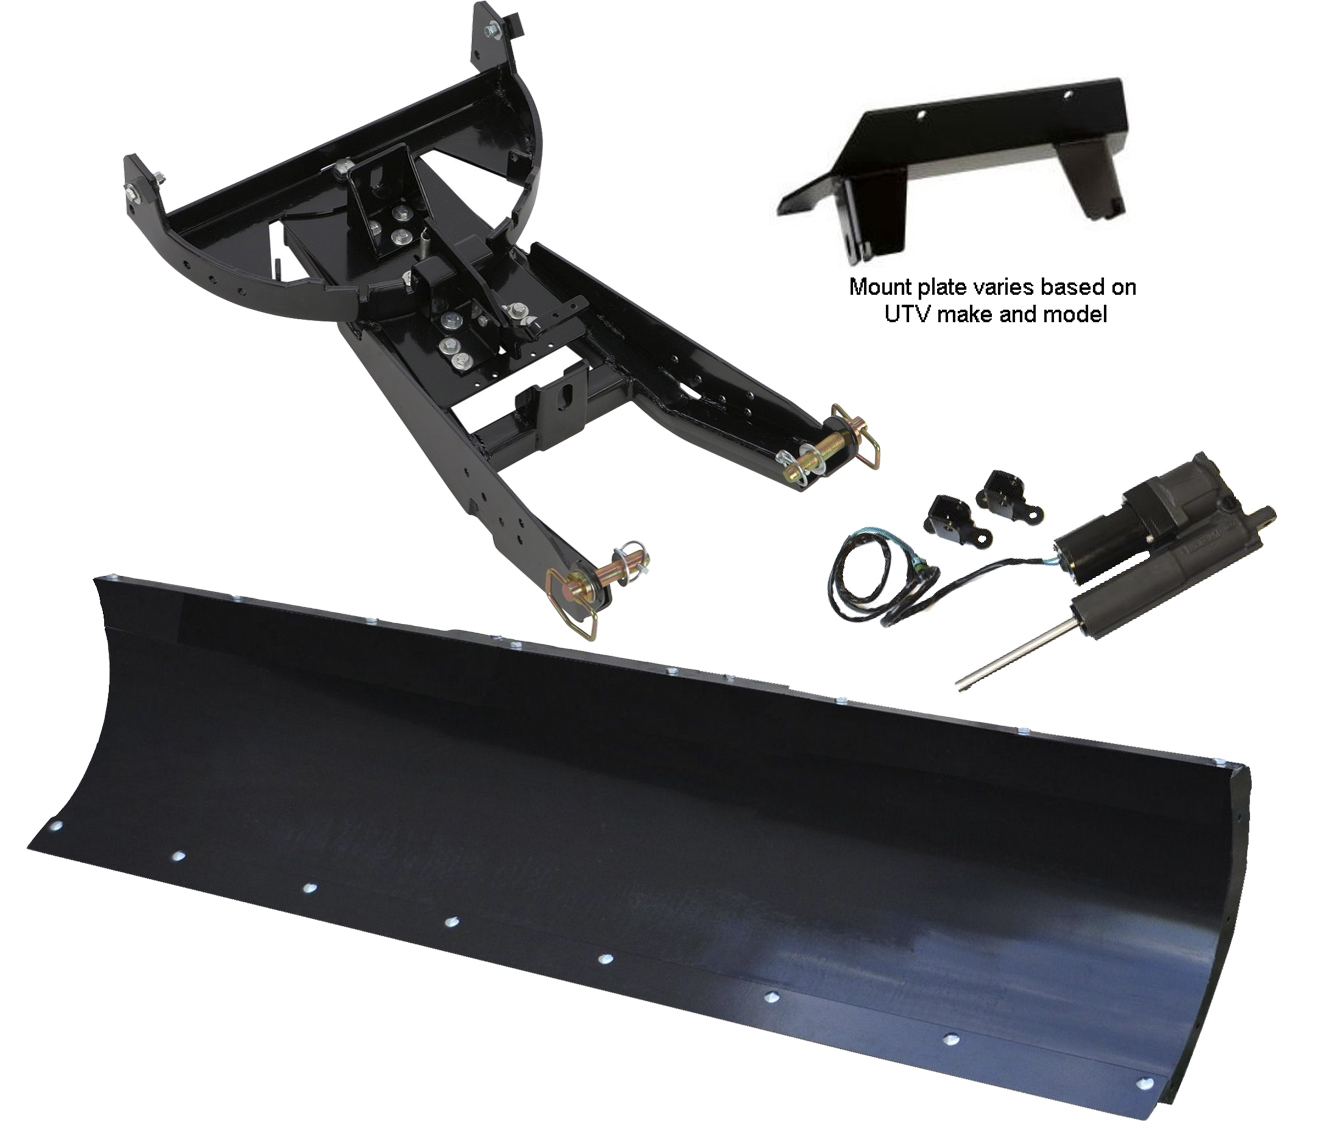 72 inch DENALI UTV Snow Plow Kit and Hydroturn for 2012-2018 RZR 570 and 570-S